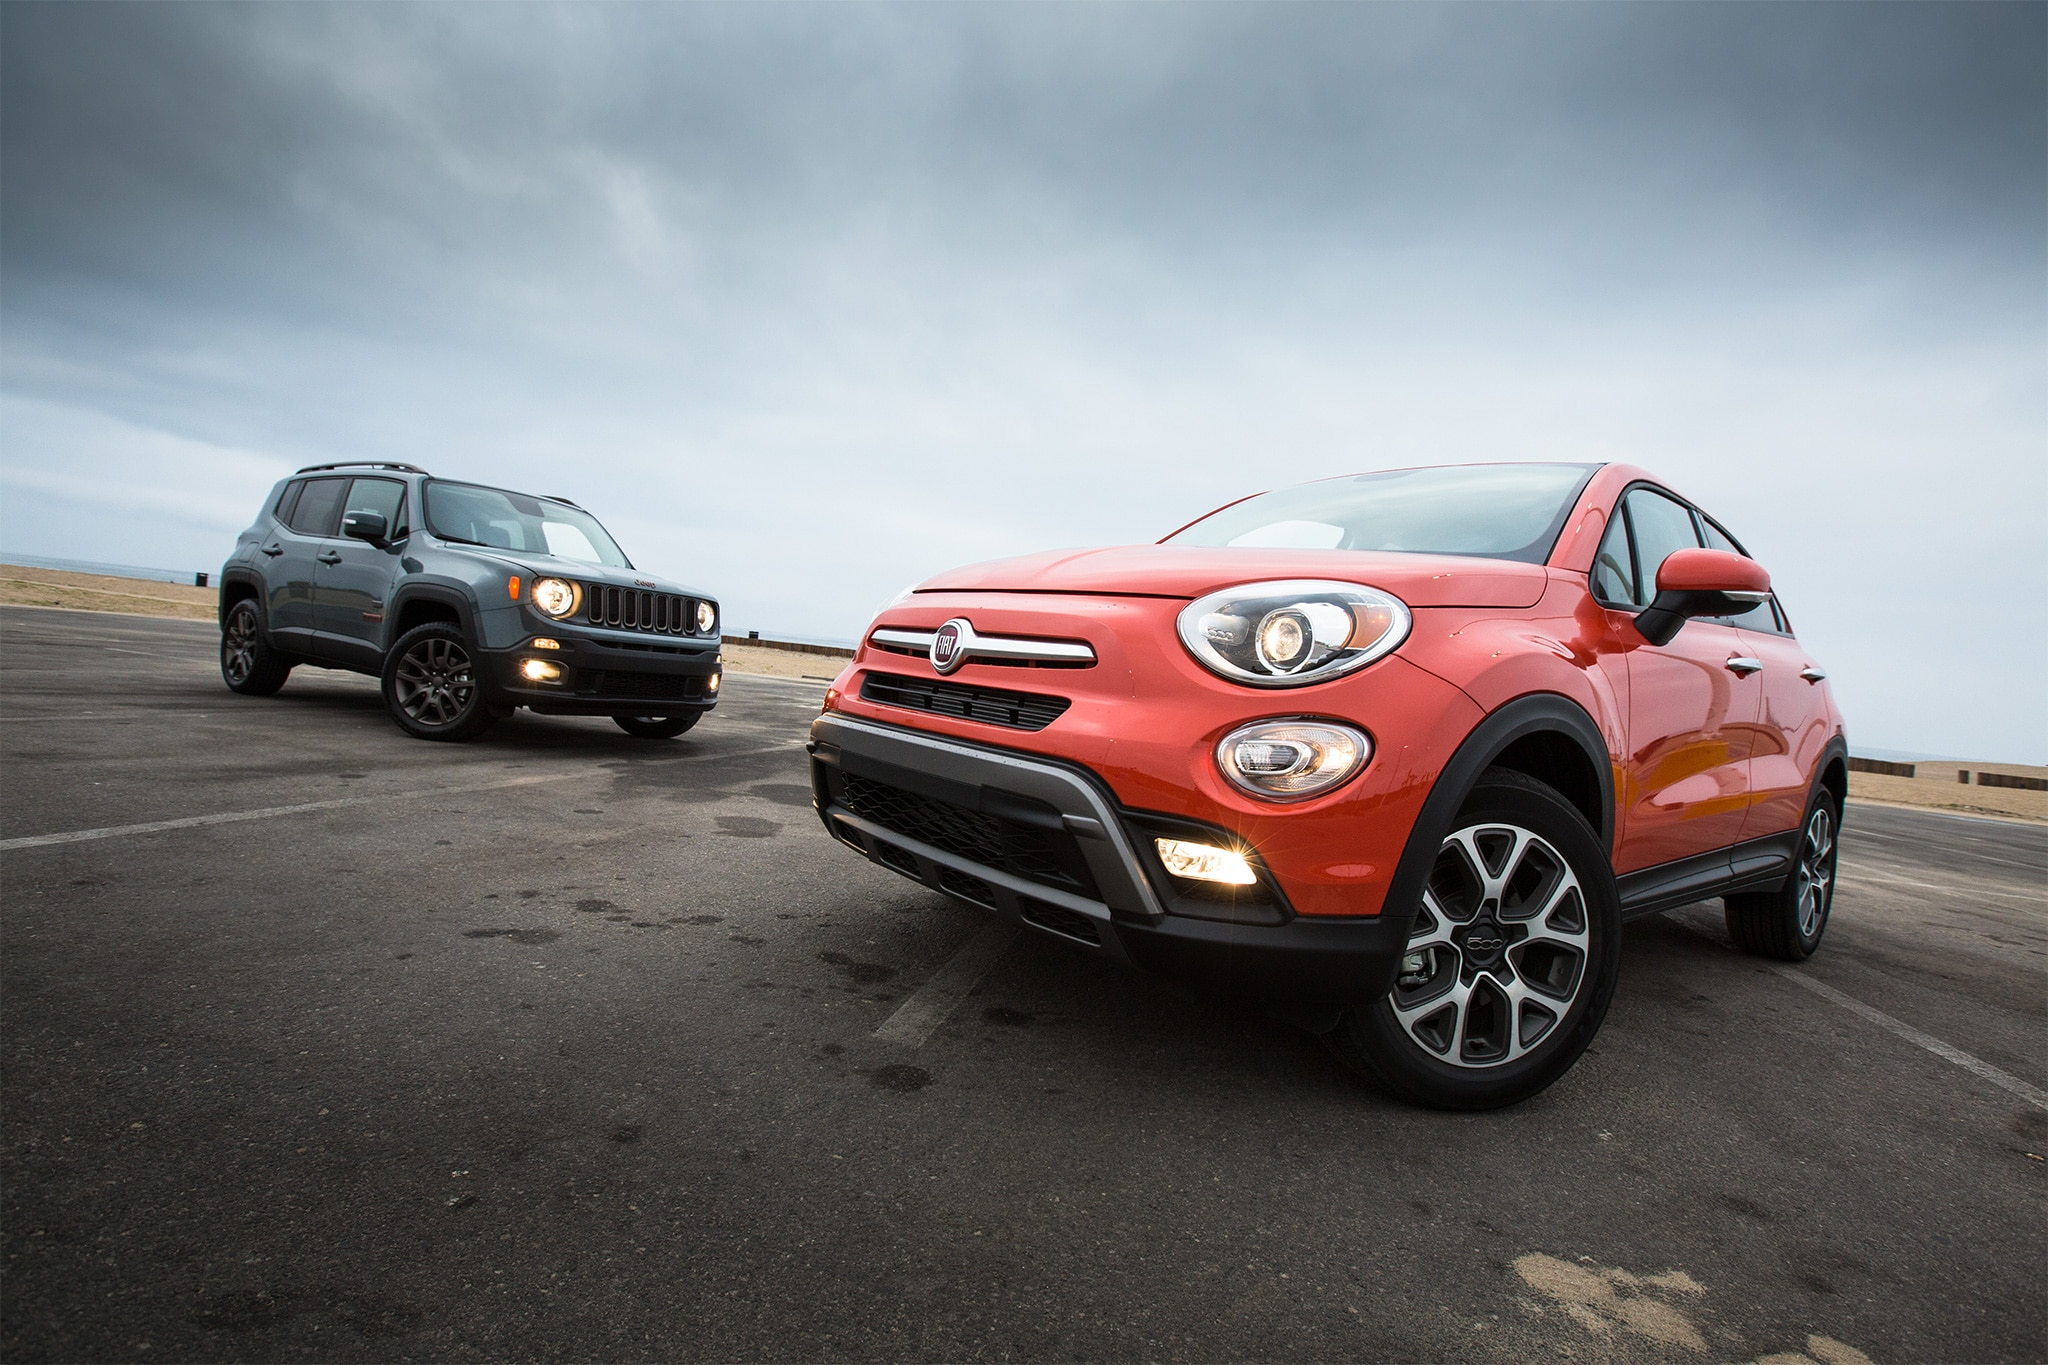 2016 Fiat 500X Trekking AWD Vs Jeep Renegade 01